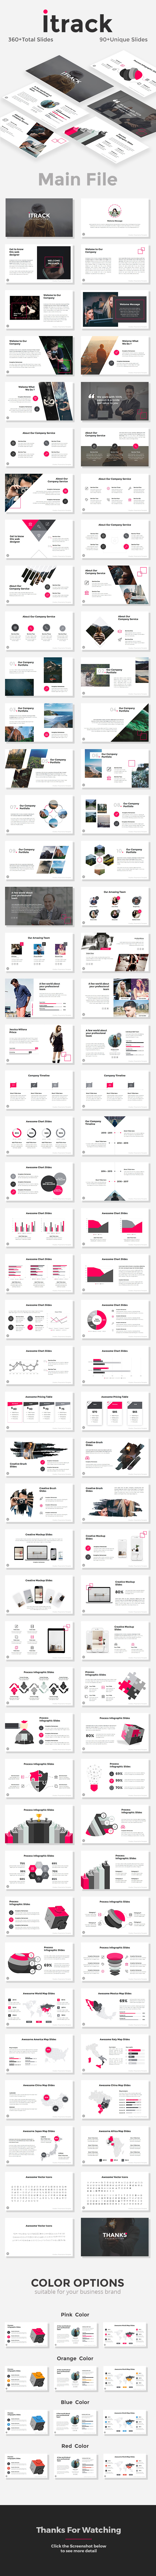 Itrack - StartUp Pitch Deck PowerPoint Templates - Pitch Deck PowerPoint Templates